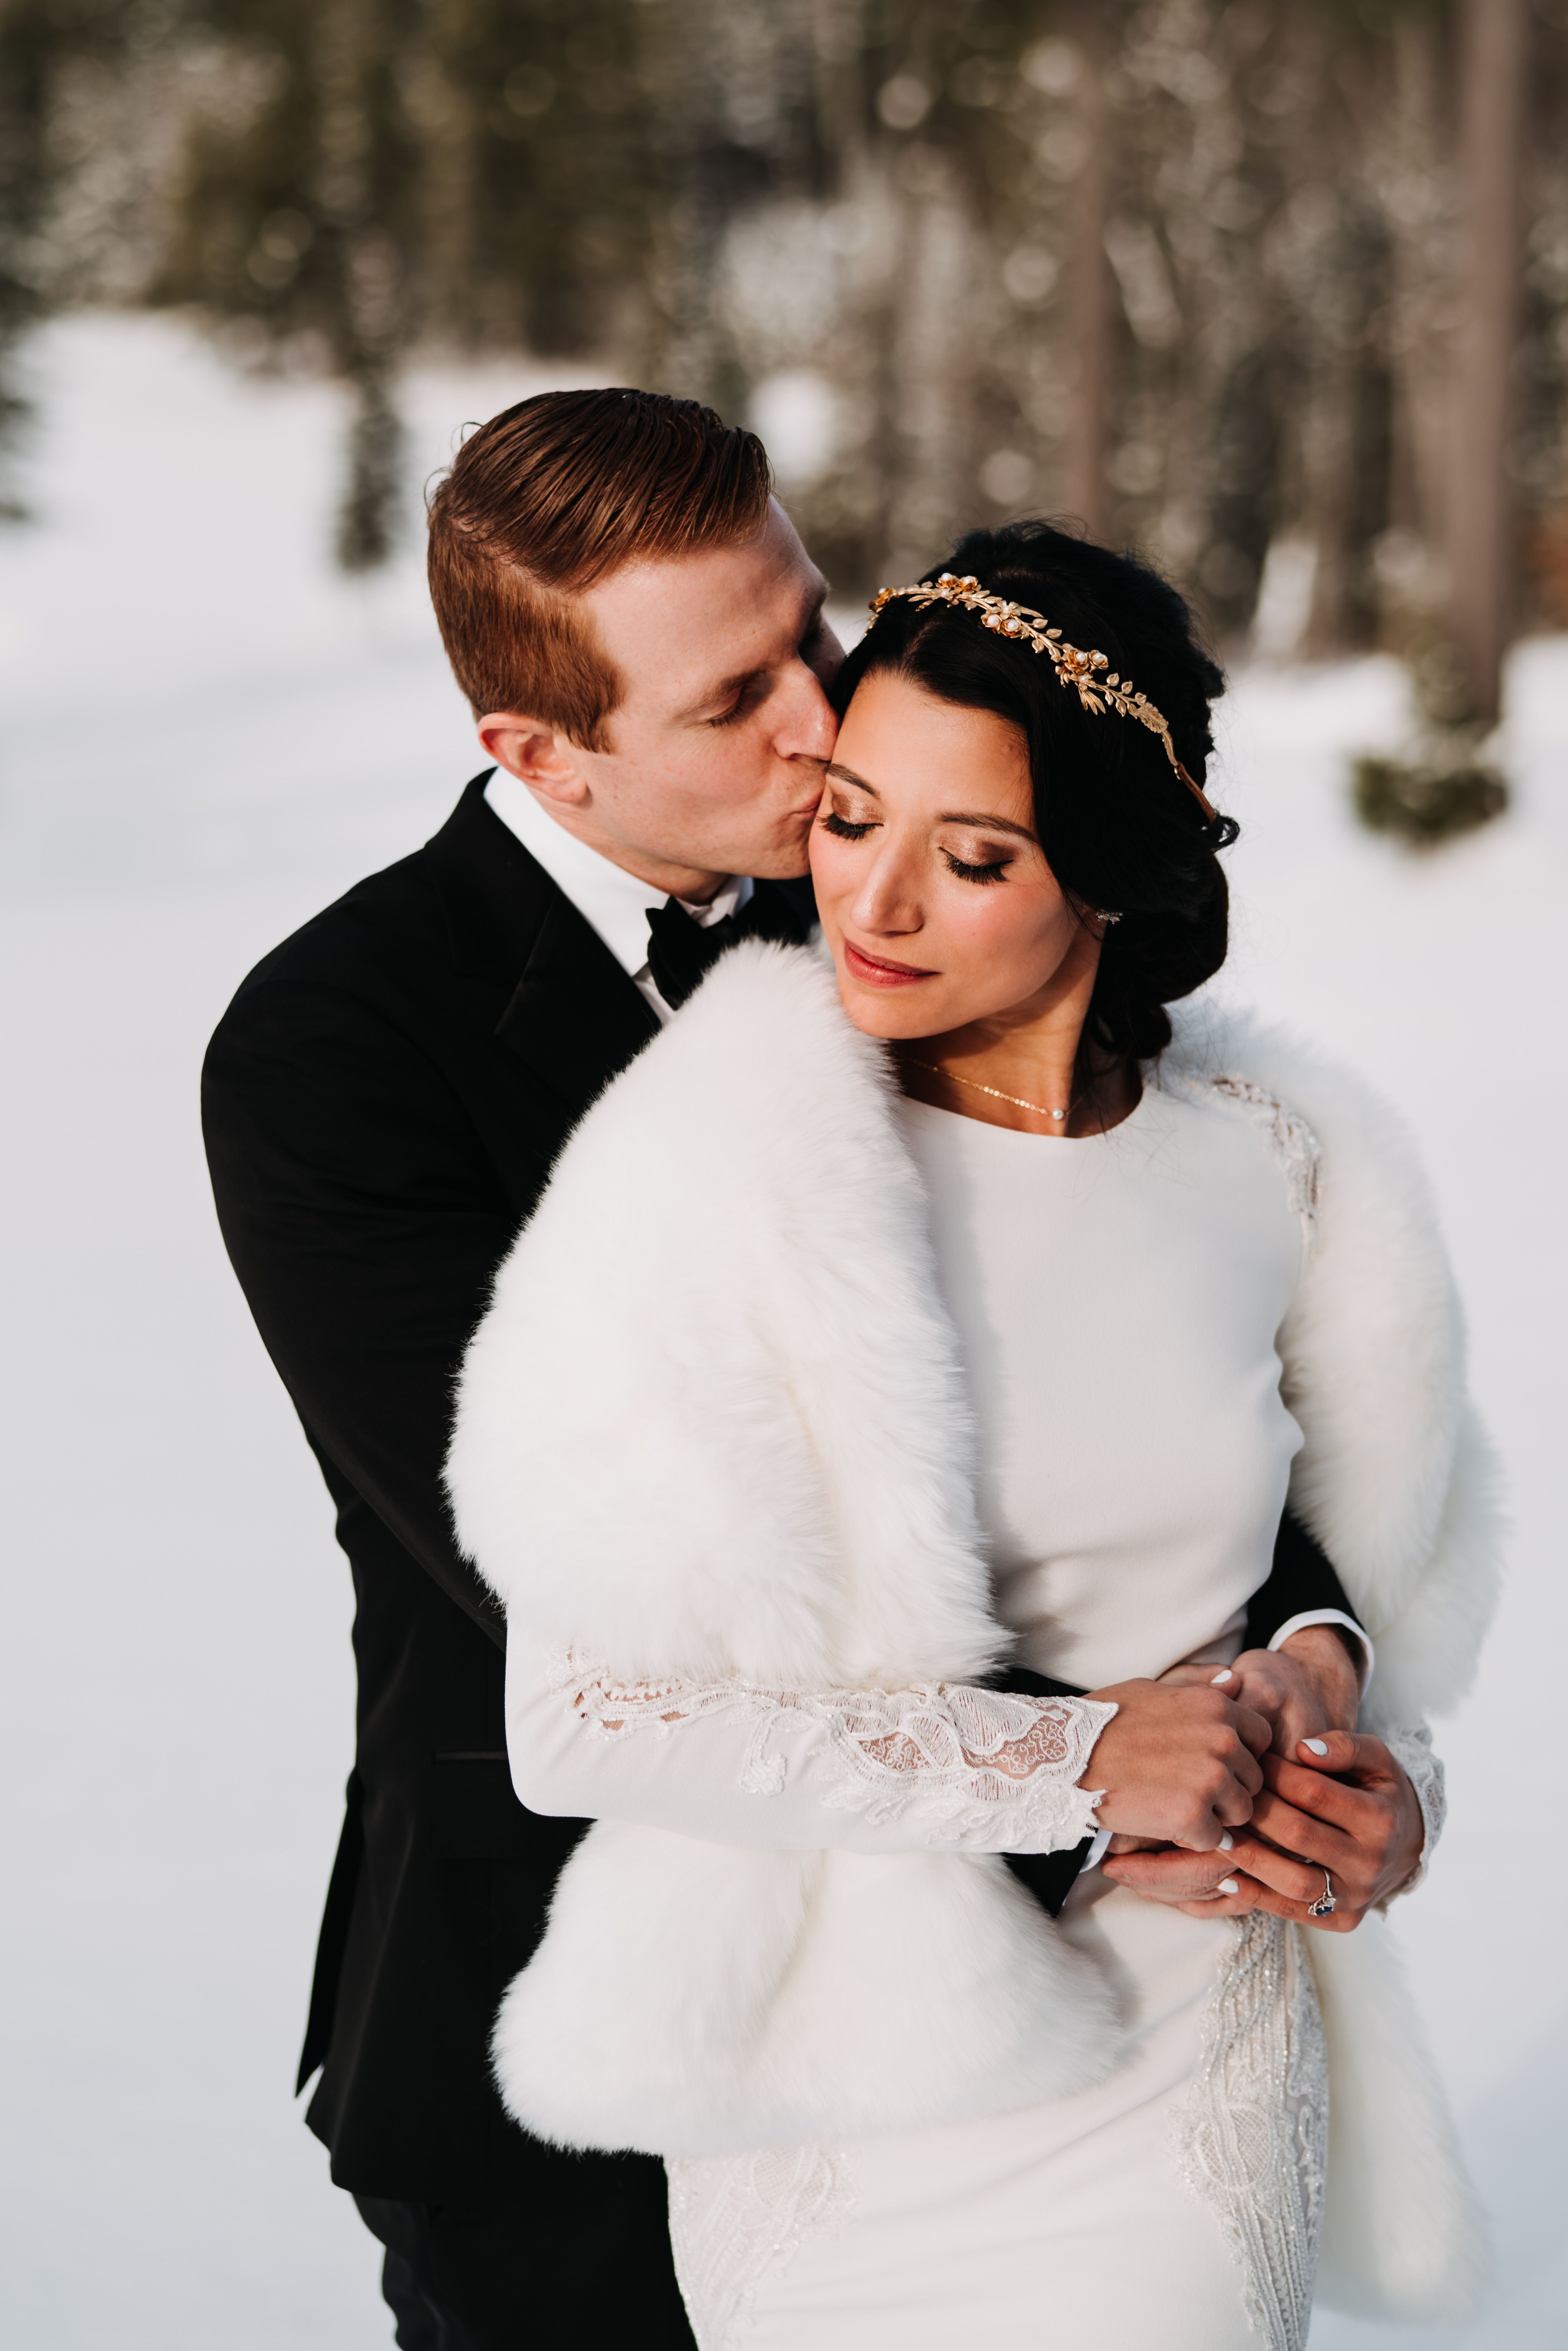 A stunning winter wedding surrounded by the beauty of the